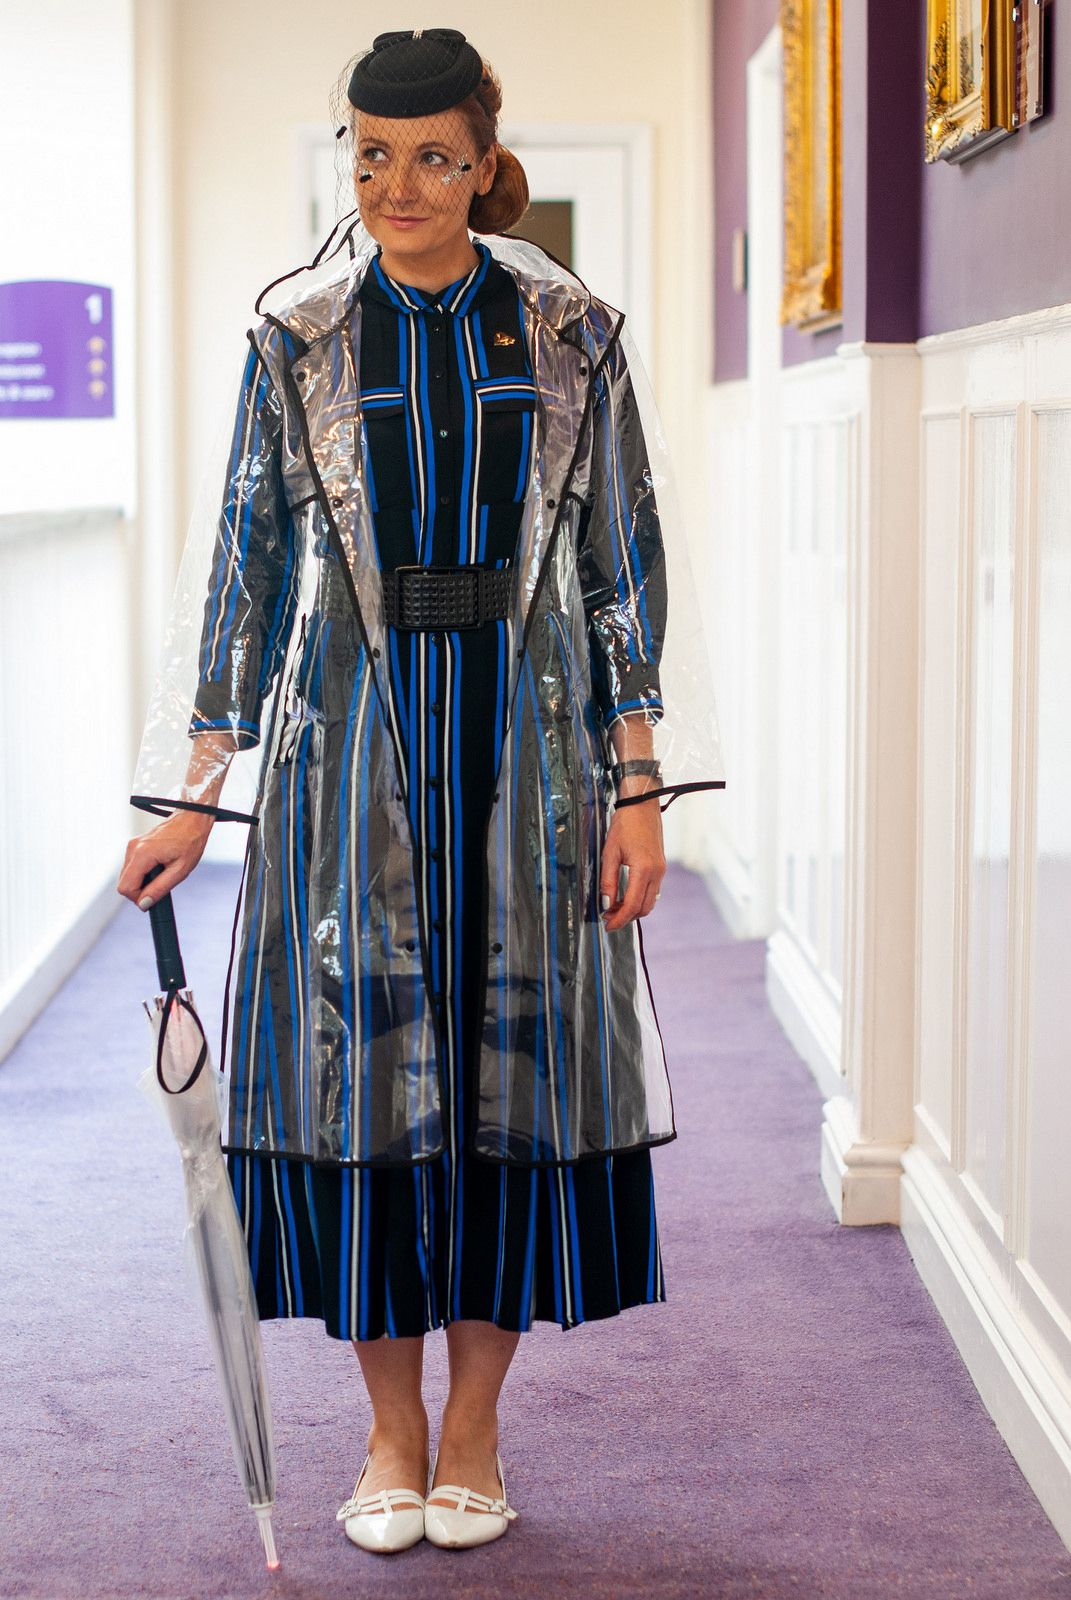 Futuristic 1940s Style Secret Cinema Blade Runner Costume Striped Shirt Dress With Pillbox Hat And Birdcage Veil 1940s Outfits 1940s Fashion Runner Costumes